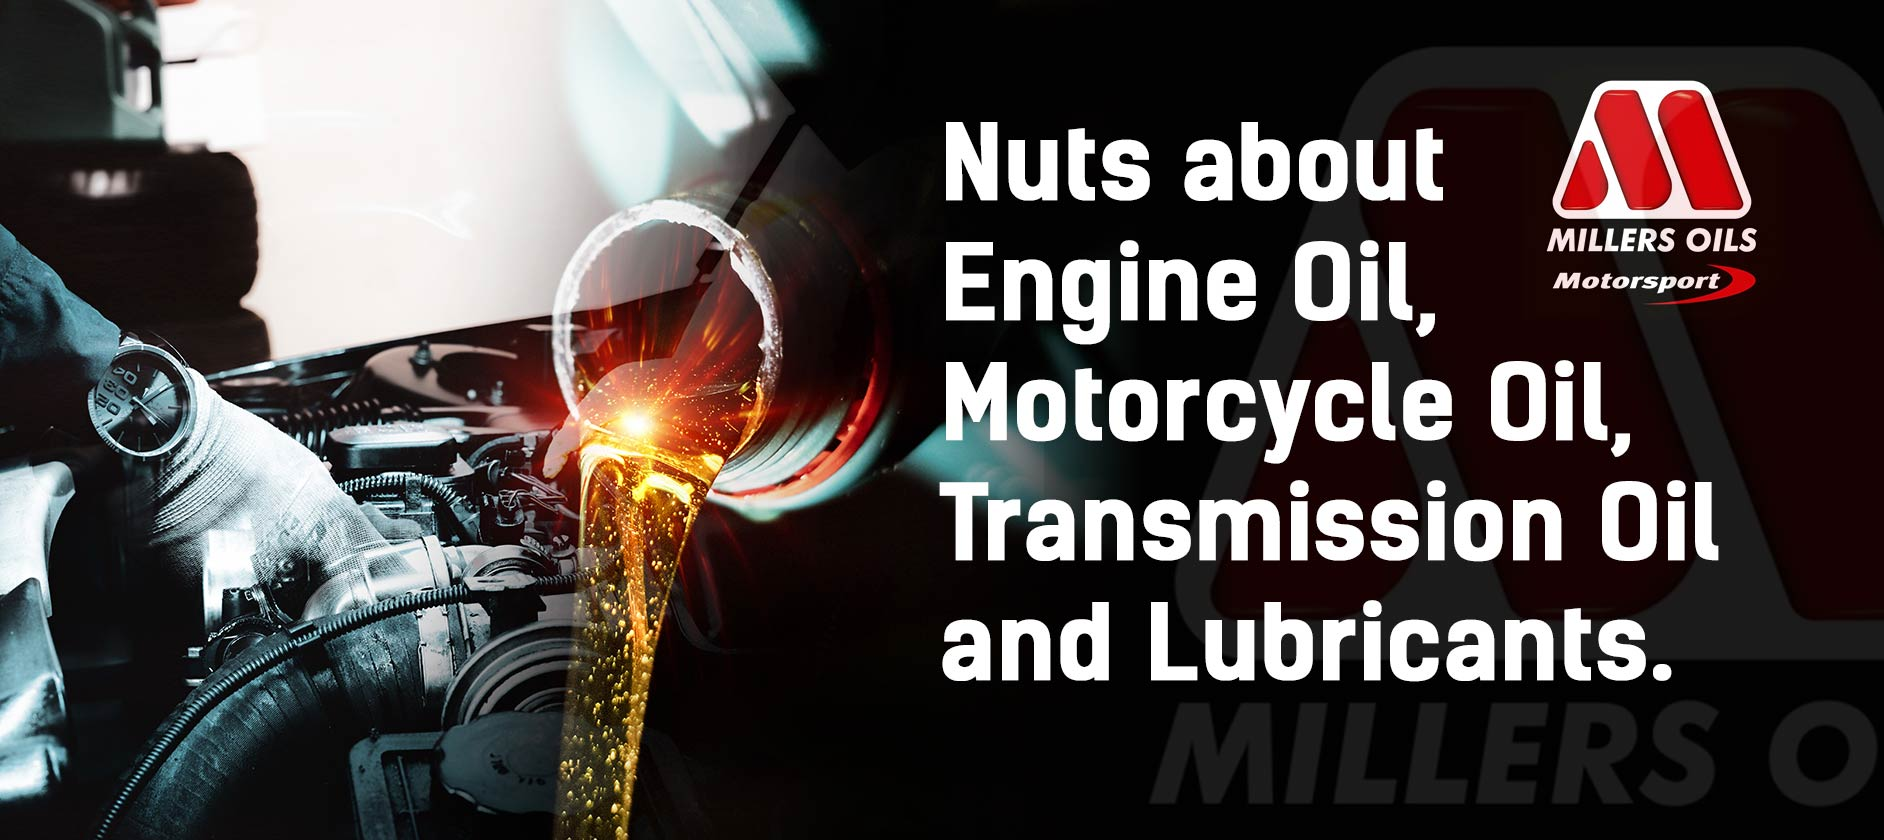 Nuts about Engine Oil, Motorcycle Oil, Transmission Oil and Lubricants.